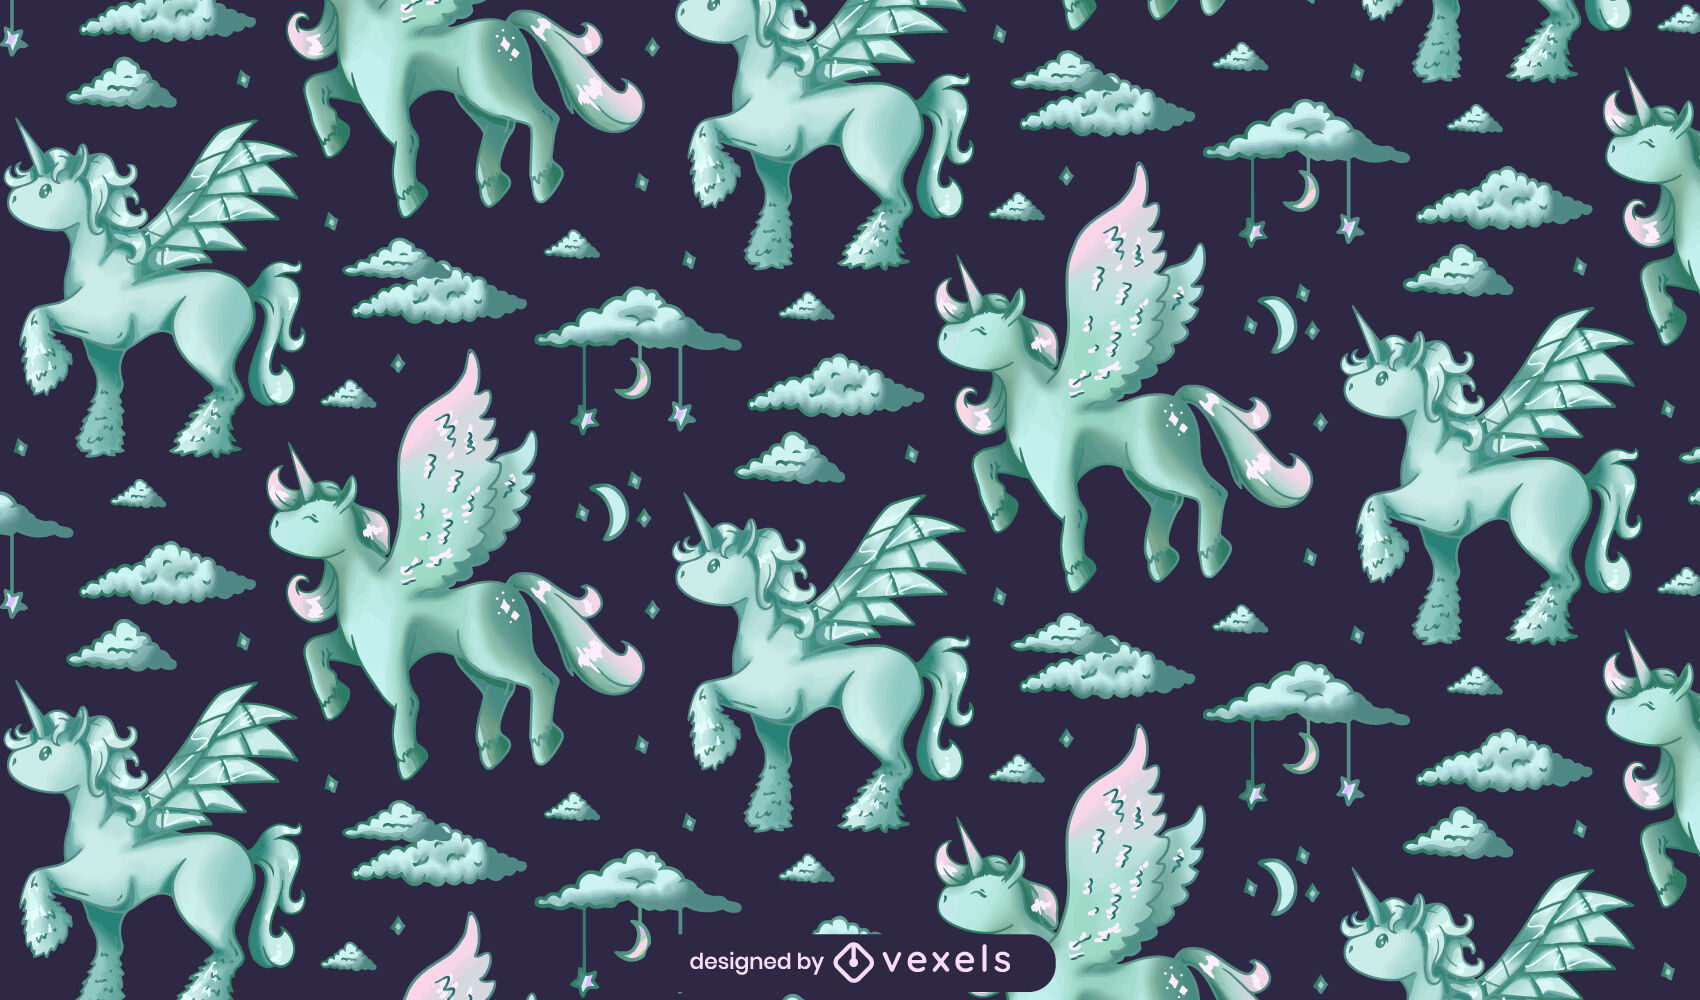 Magical unicorns with wings pattern design